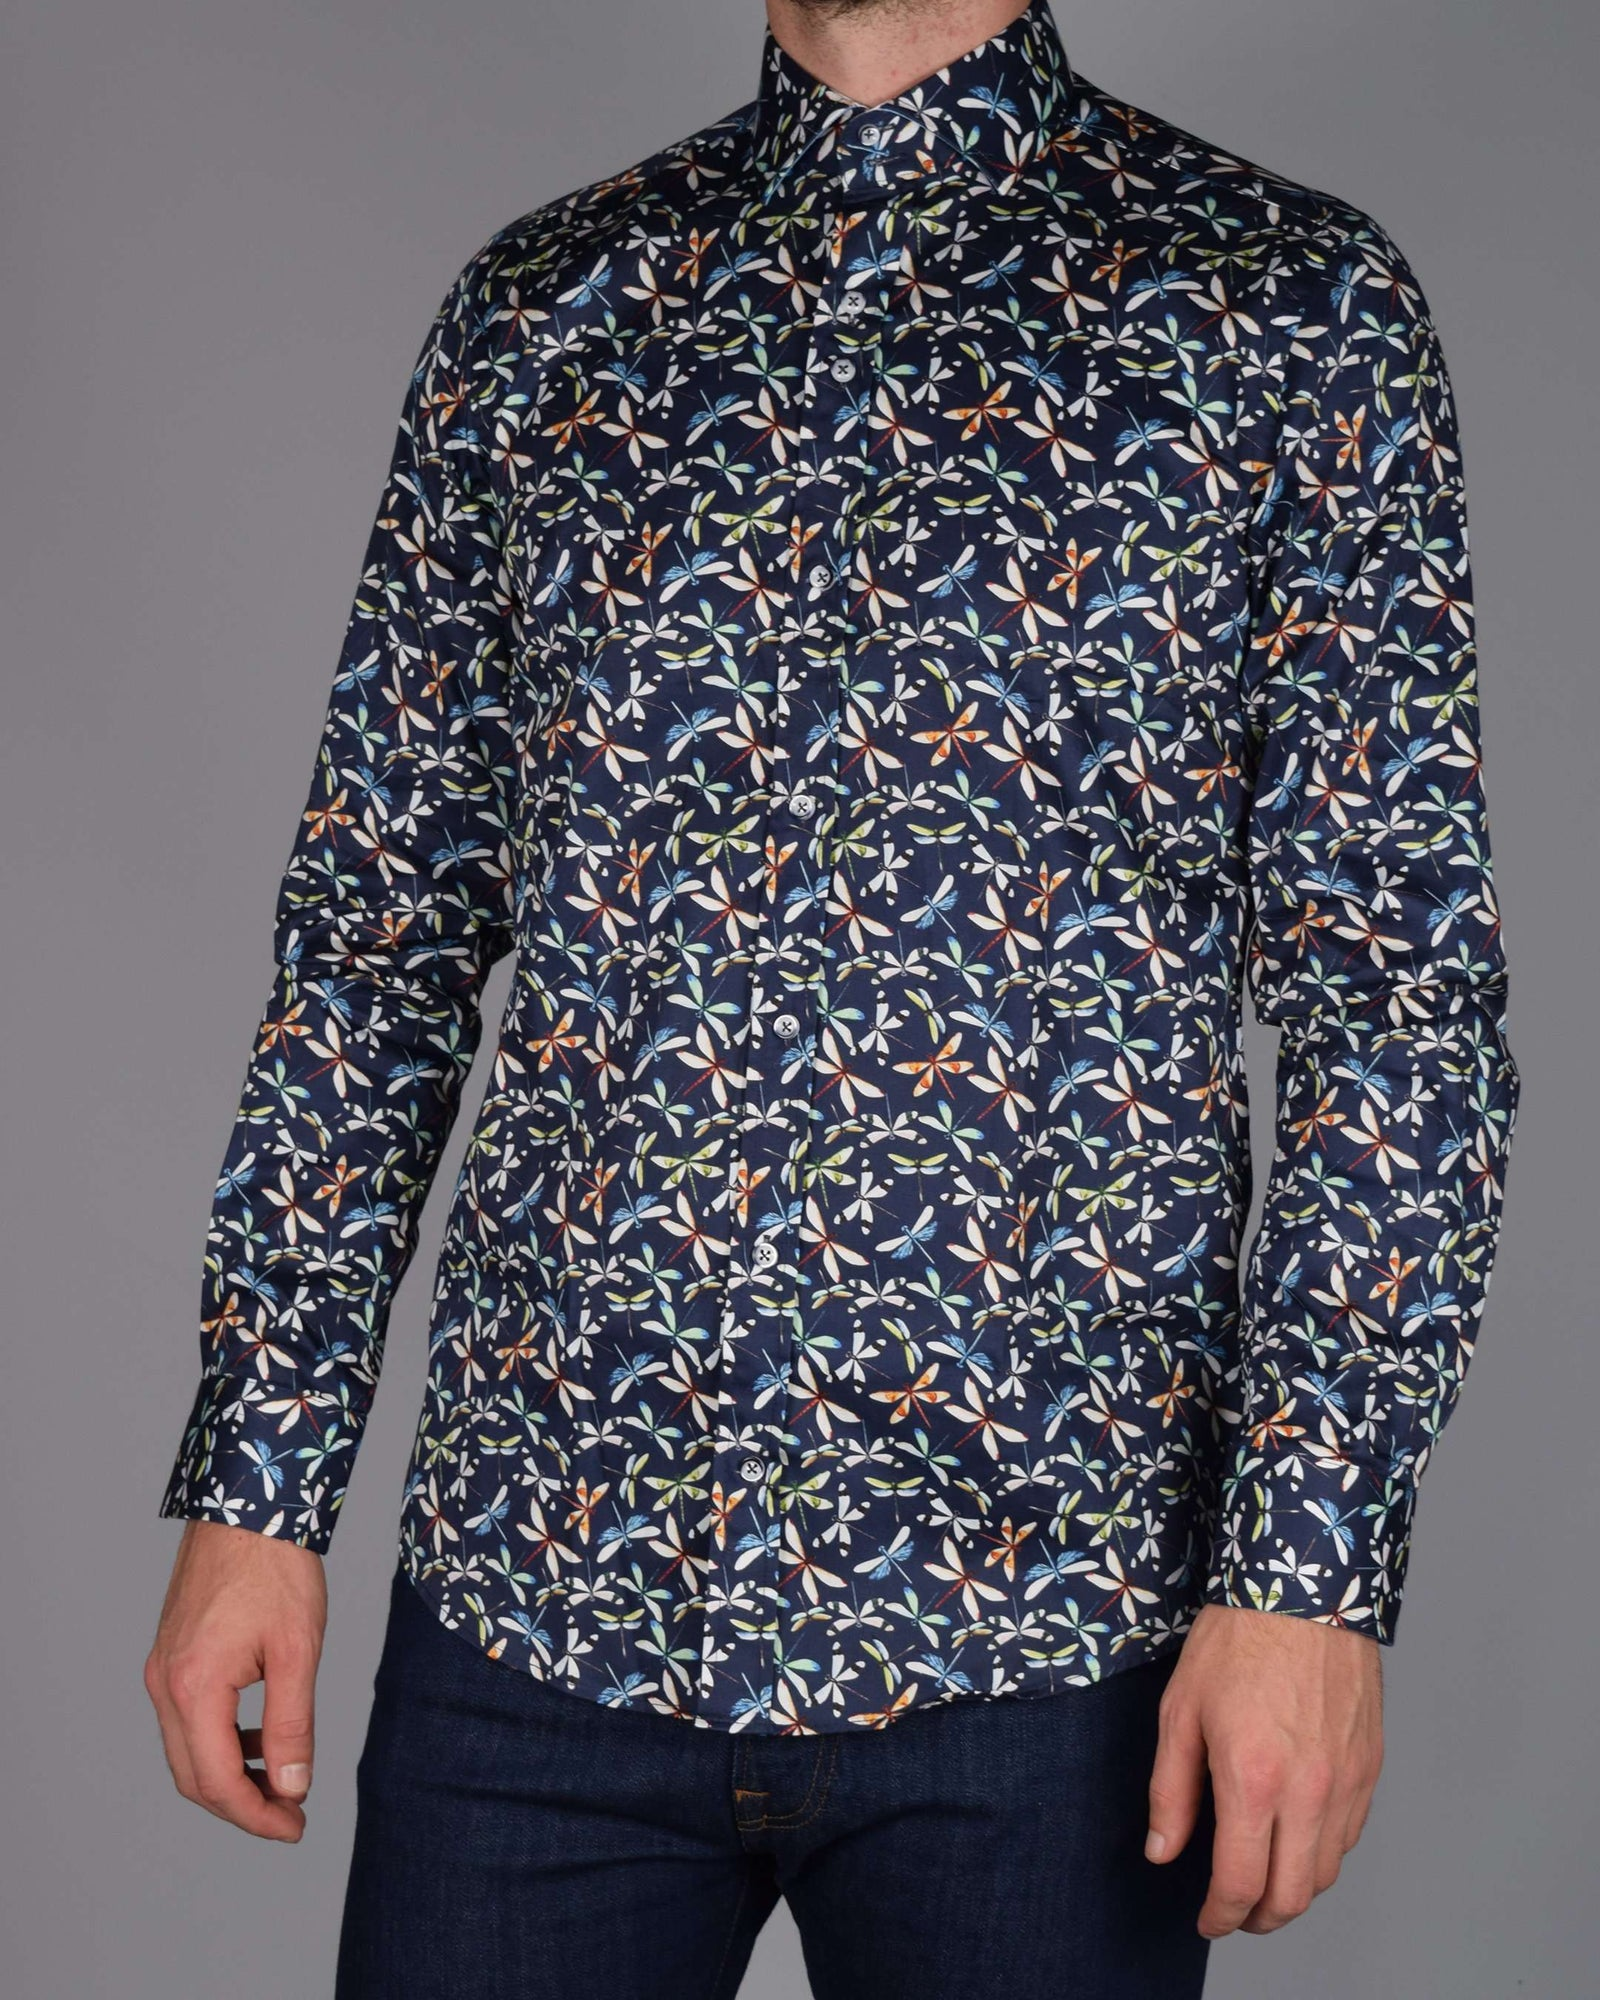 GUIDE LONDON Sateen Dragonfly Print LS Shirt - Revolver Menswear Bawtry